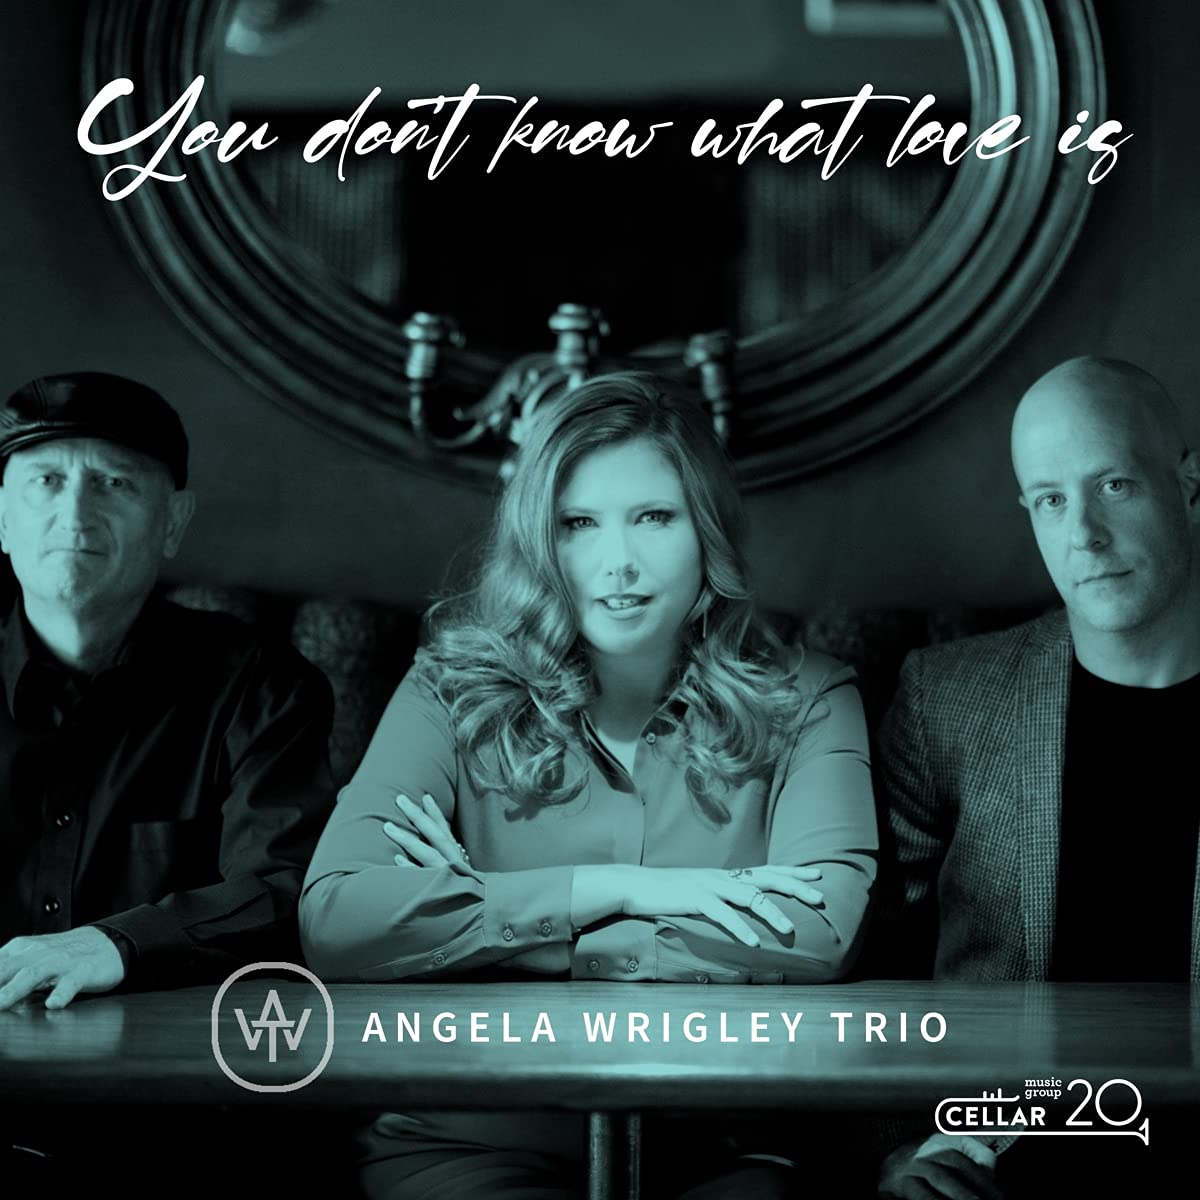 Angela Wrigley Trio - You Don't Know What Love Is (2021) [FLAC] Download